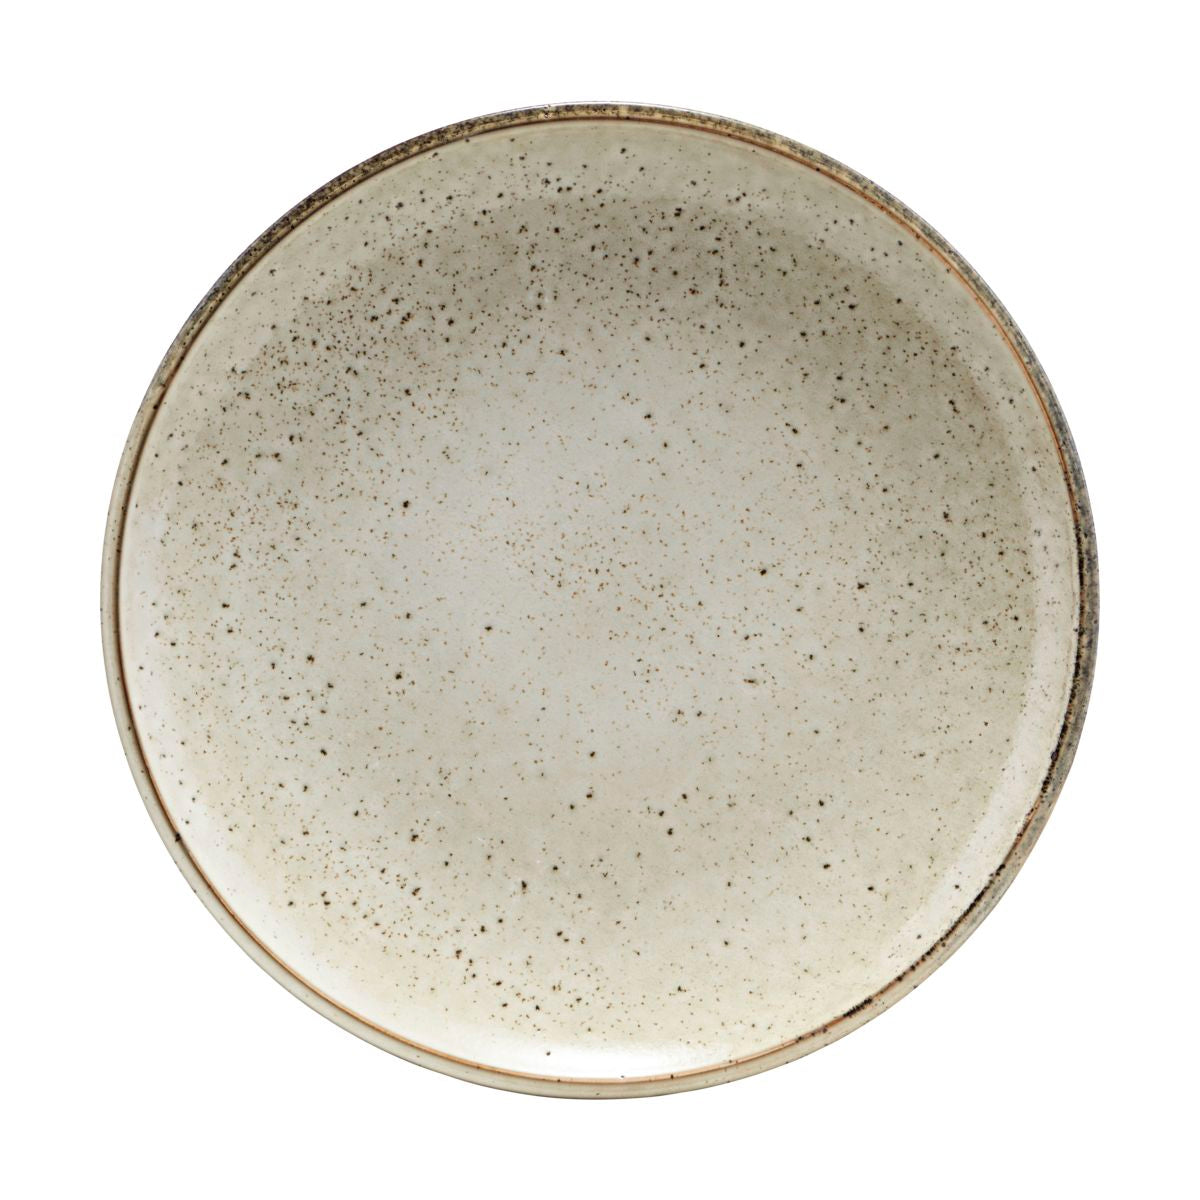 'LAKE' SPECKLED GREY DINNER PLATE